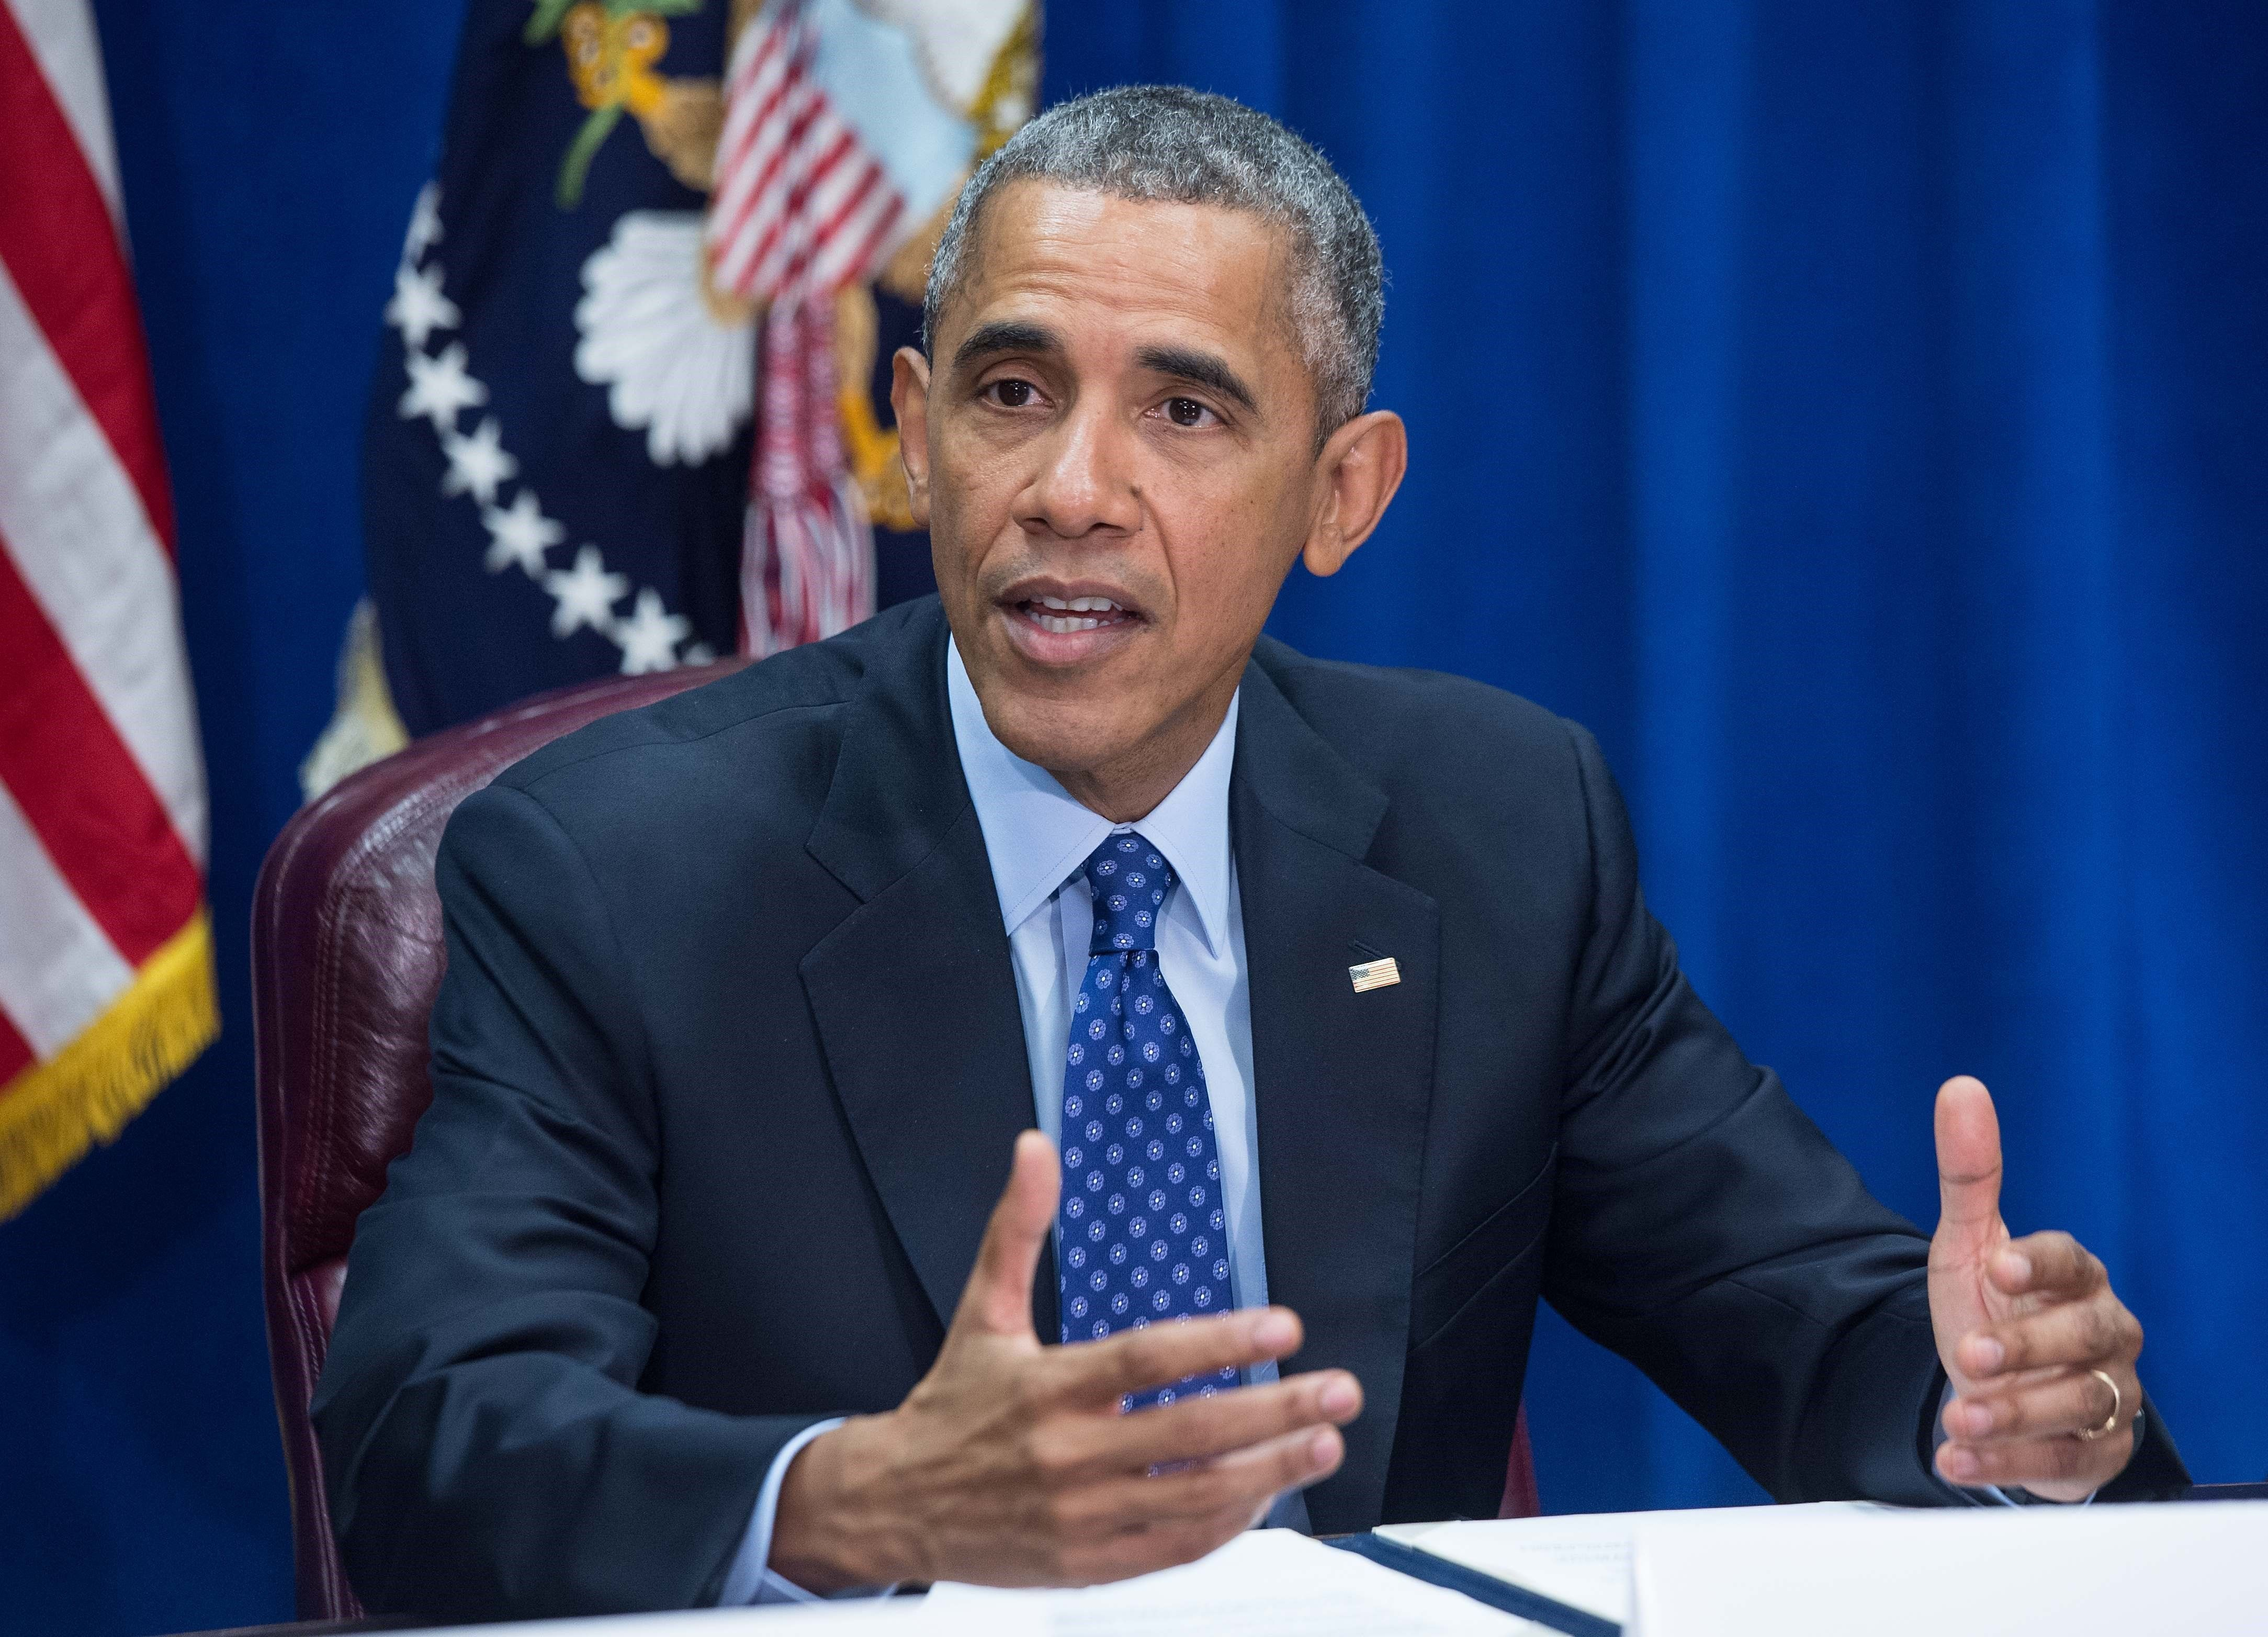 US President Barack Obama speaks about the Trans-Pacific Partnership (TPP) agreement during an event at the Agriculture Department in Washington, DC, on October 6, 2015.   AFP PHOTO/NICHOLAS KAMM        (Photo credit should read NICHOLAS KAMM/AFP/Getty Images)